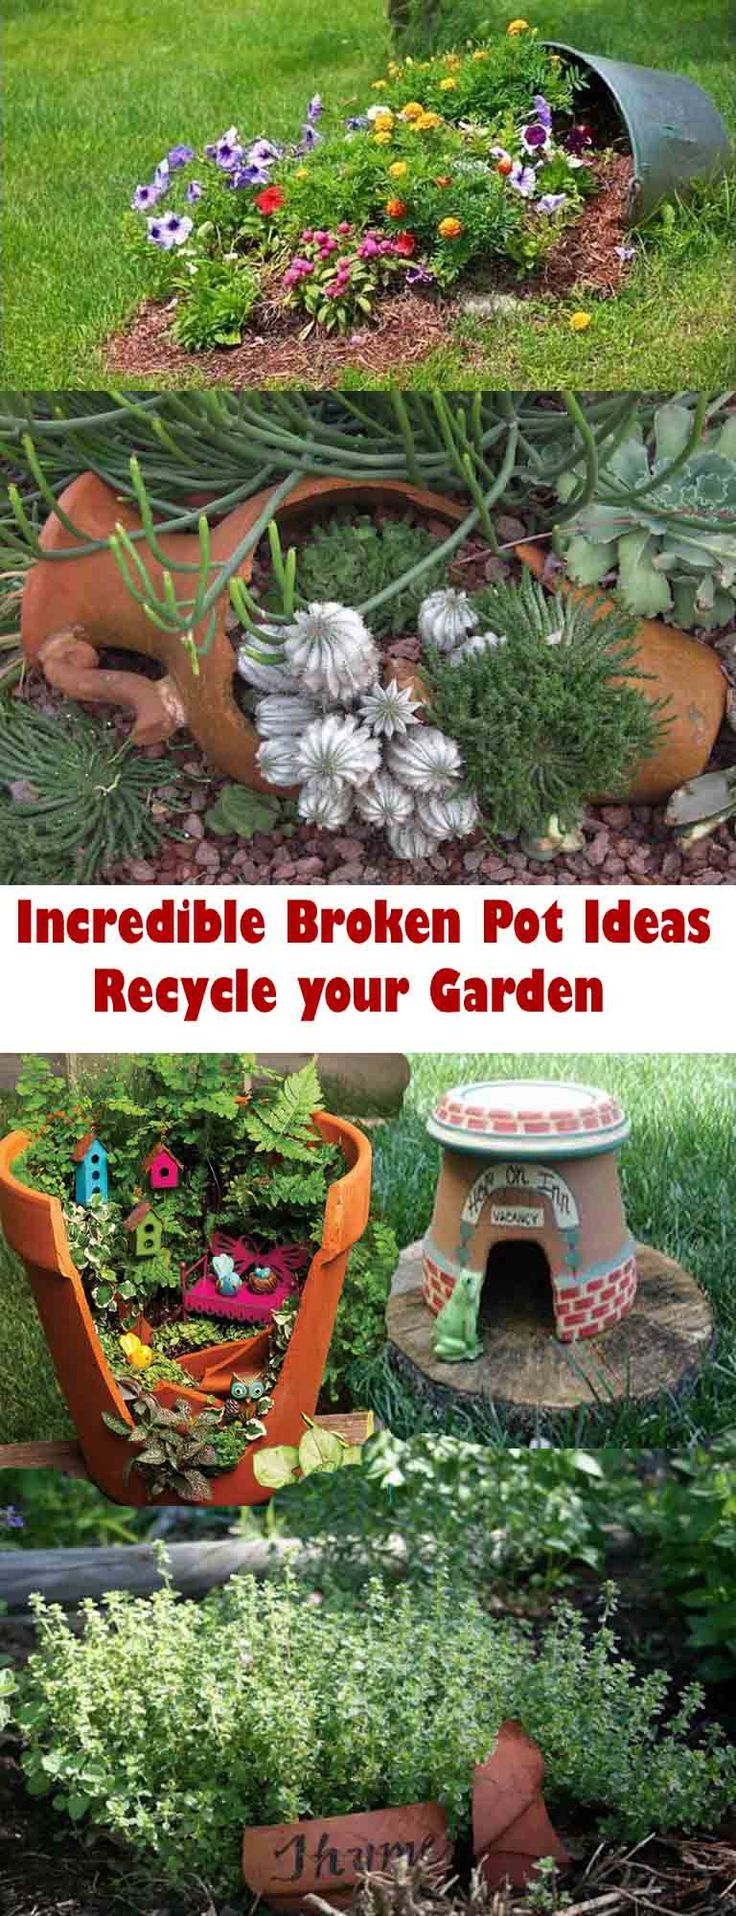 best 25+ recycled garden ideas on pinterest | recycled garden